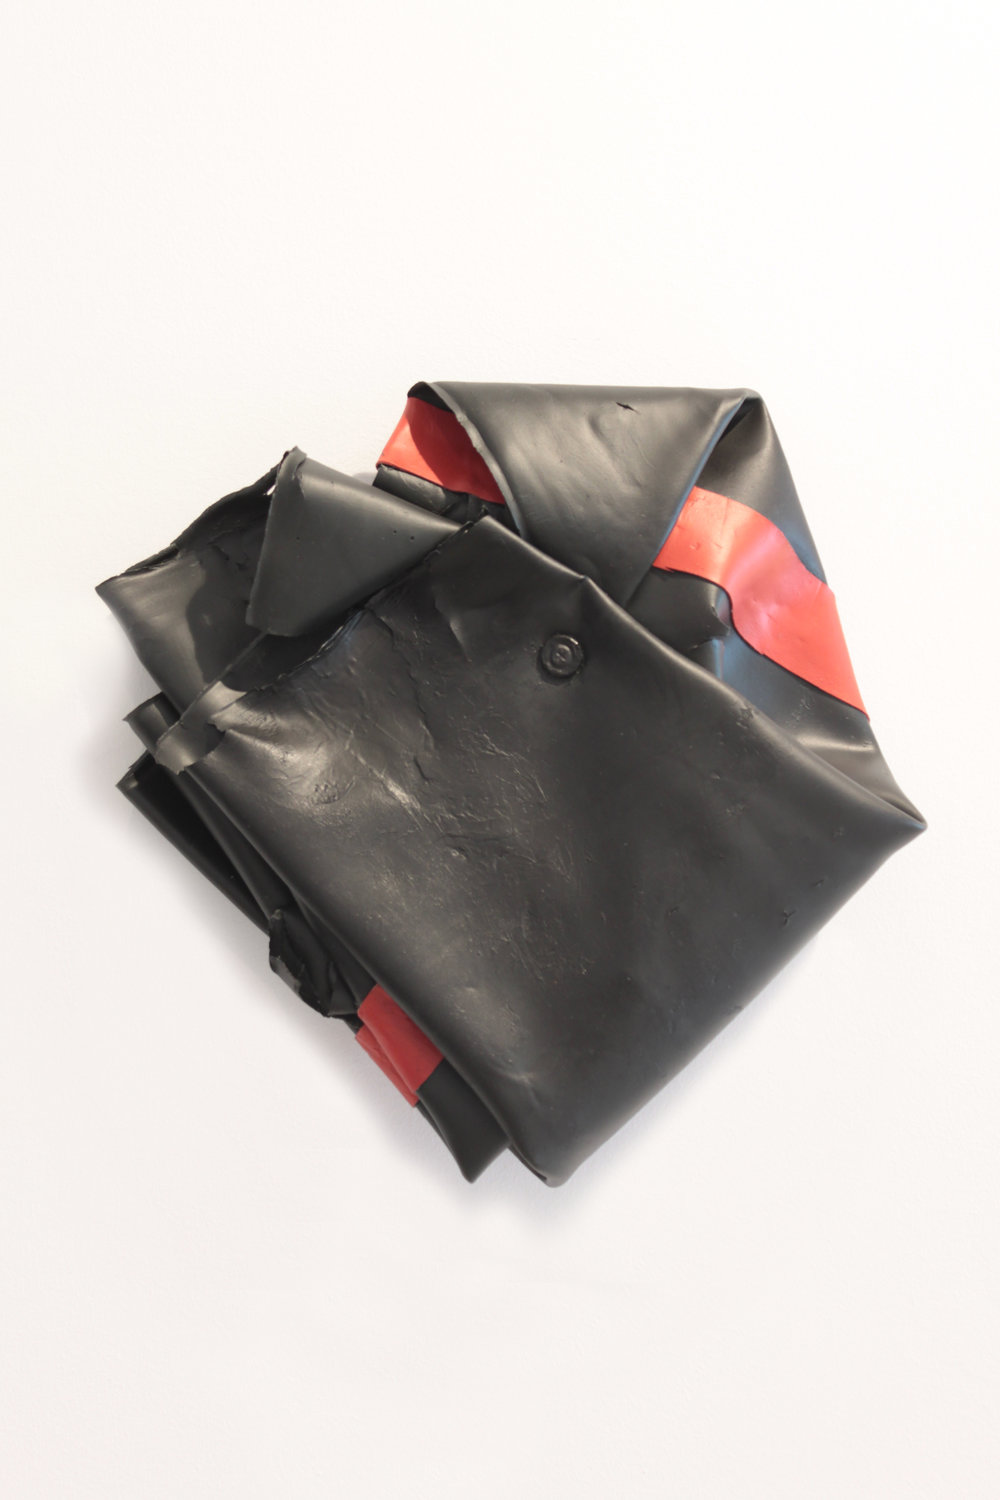 Untitled (Black-Red)  , 2015  Acrilico, tornillo y caucho sobre madera  28 x 10 cm